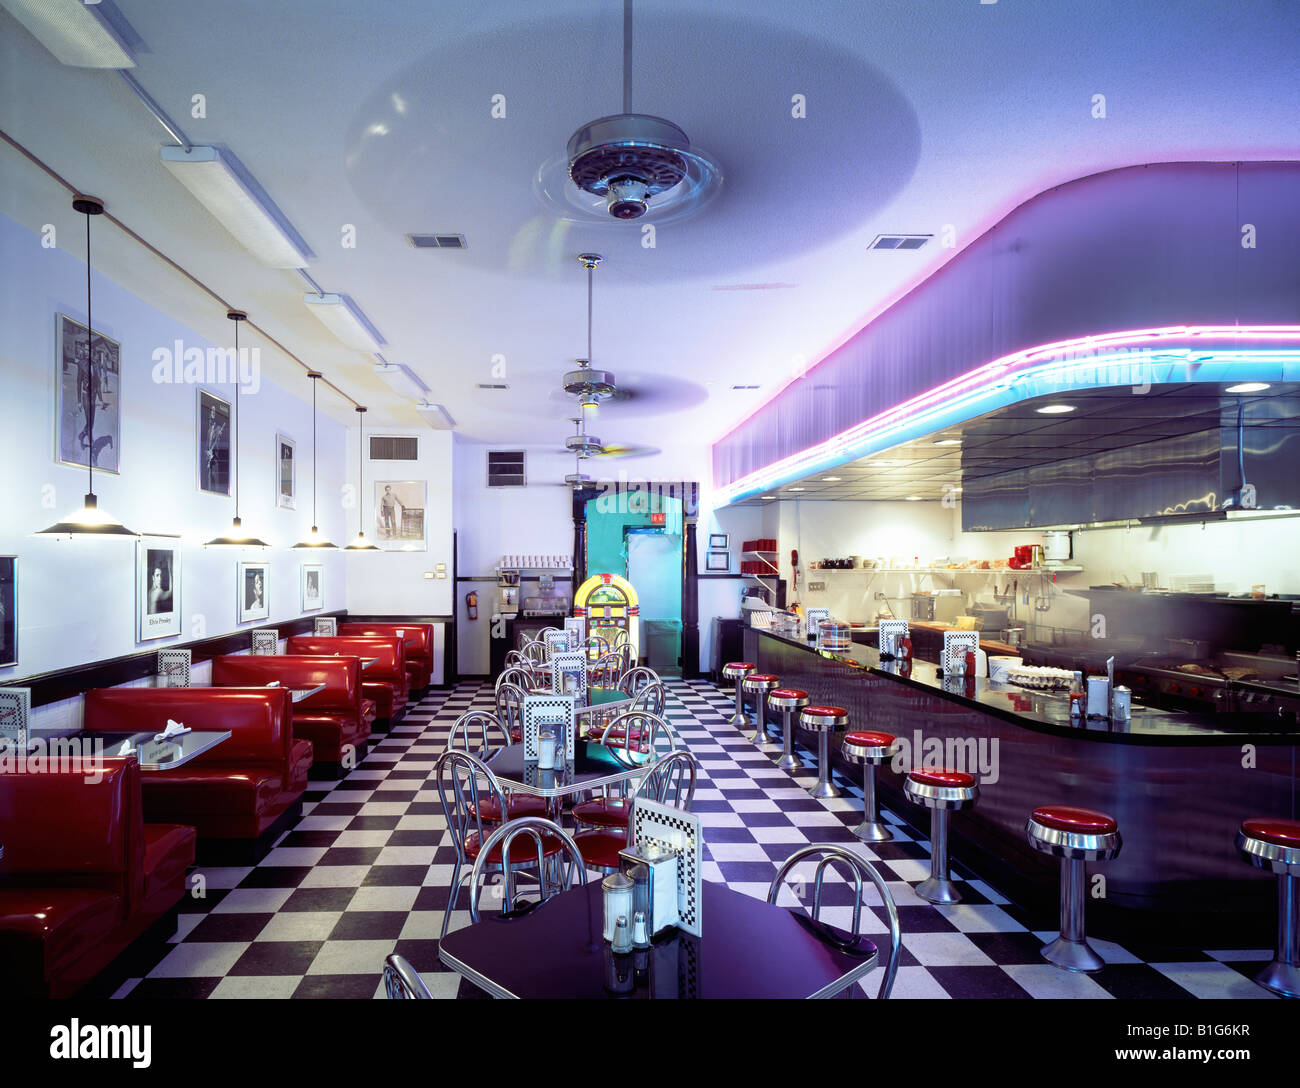 Interior view of Fannie's Diner - Stock Image